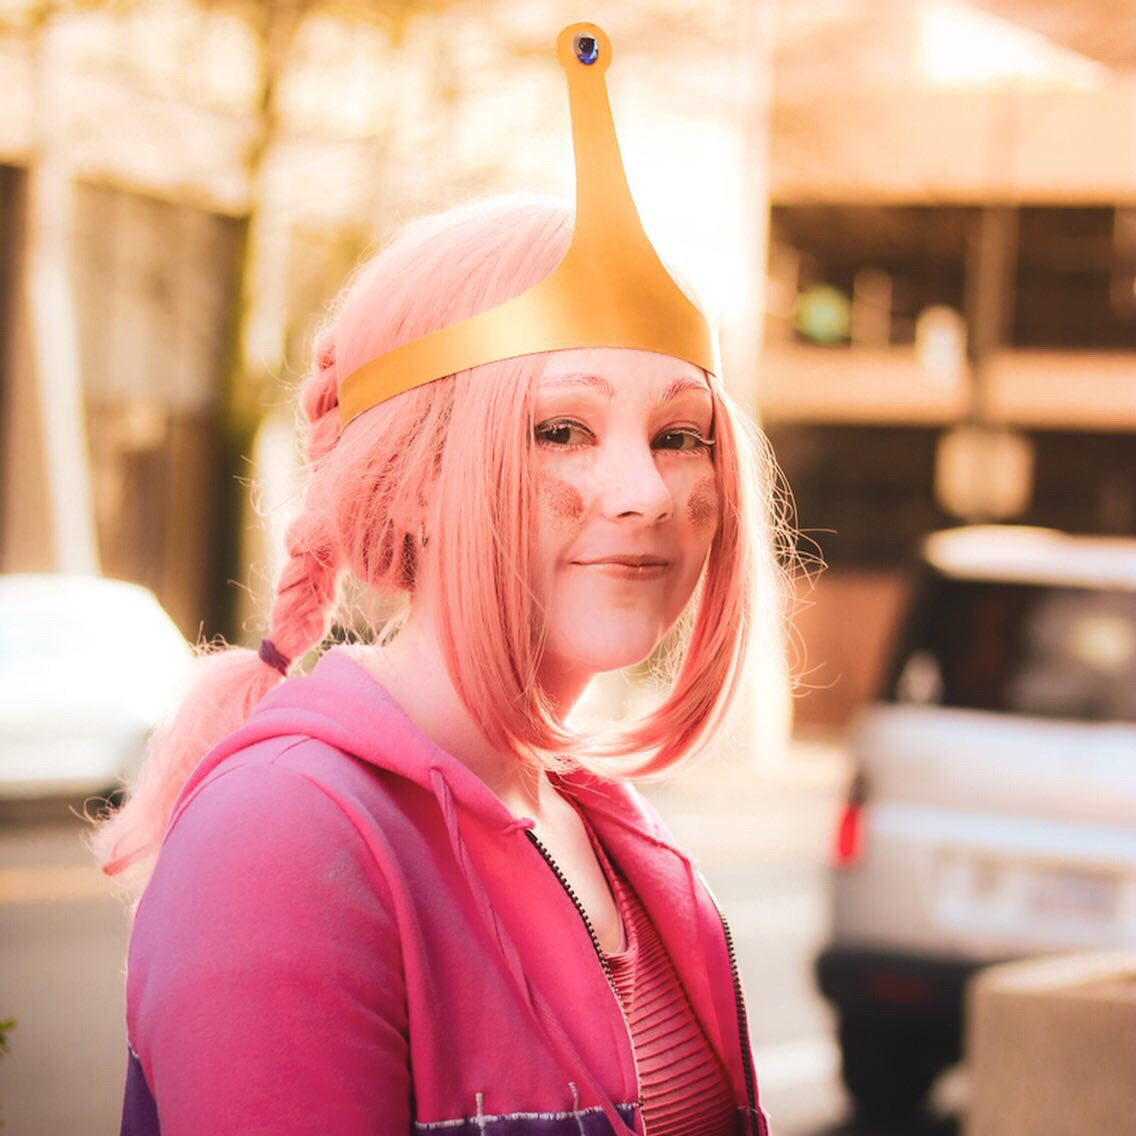 The crown is actually made of poster board. Right? I'm really happy with how it turned out . . . | : @blanksnowphotography | .  .  #cartoonnetwork #adventuretime #adventuretimecosplay #princessbubblegum #iceking #adventuretimefan #bubbline #cosplay #bmo #marceline #finnthehumanpic.twitter.com/eY0QW9YjGm